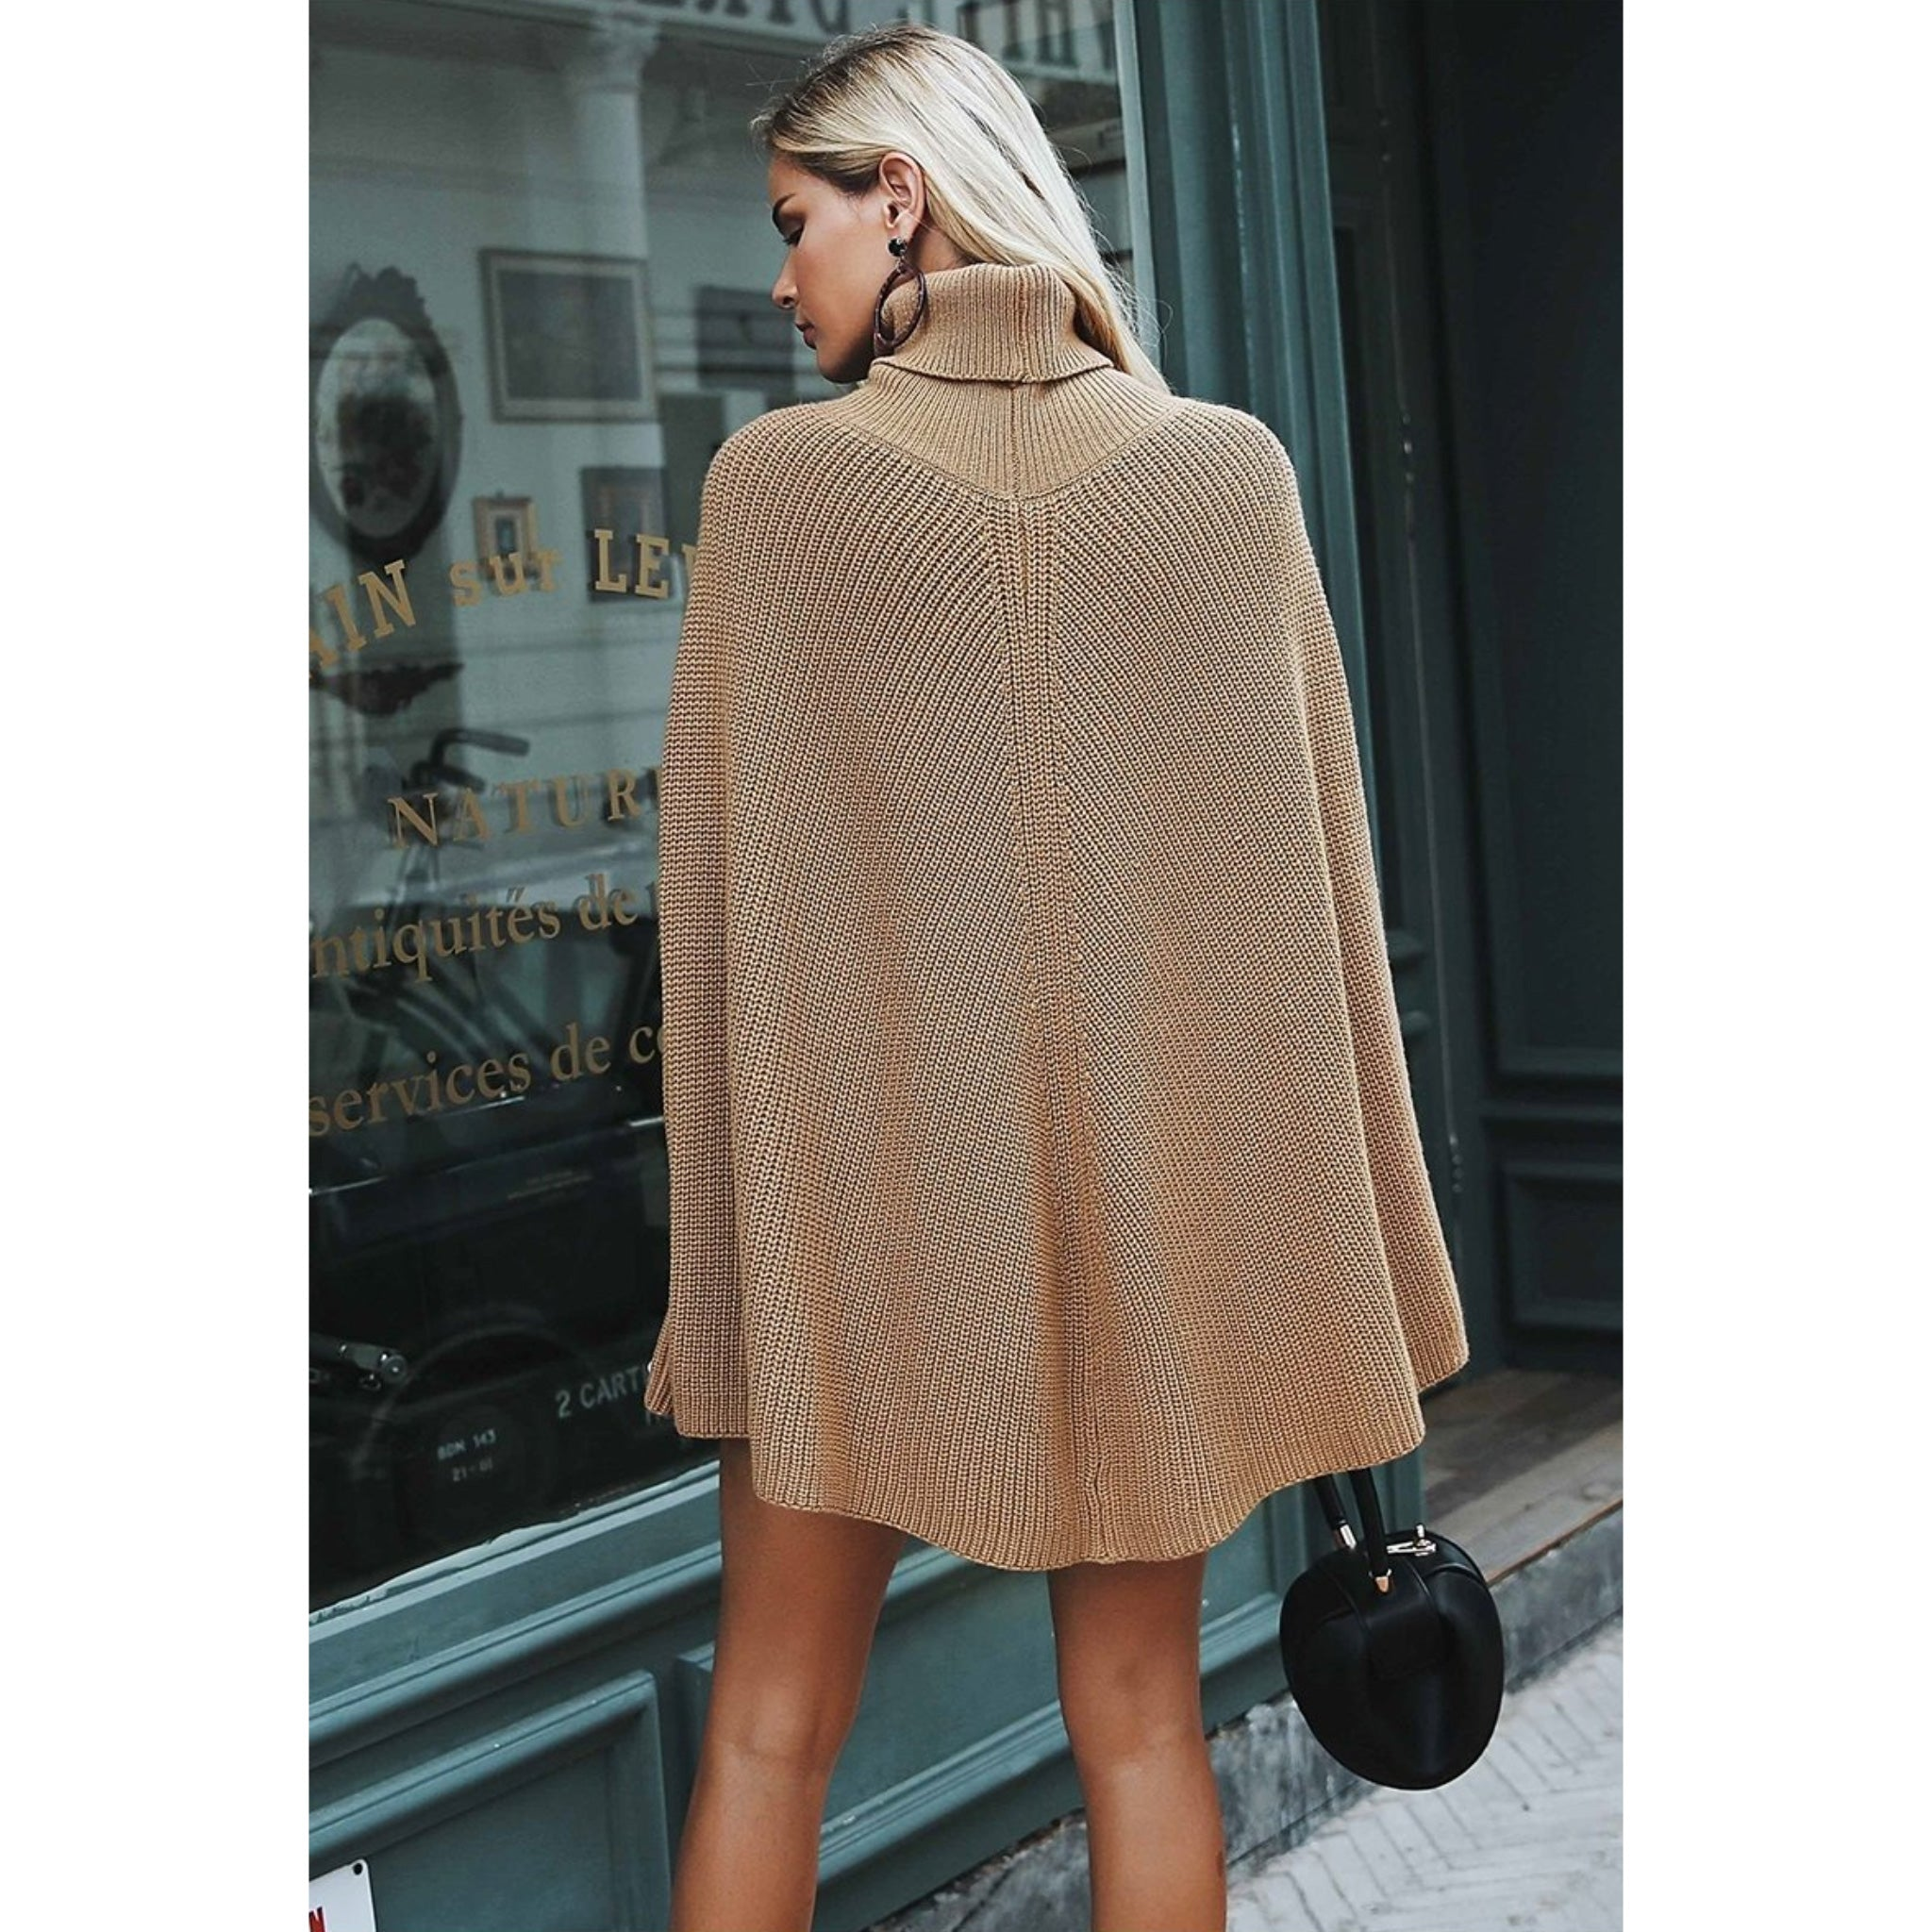 Camel Poncho Cape Women over-sized sweater outfit without sleeves